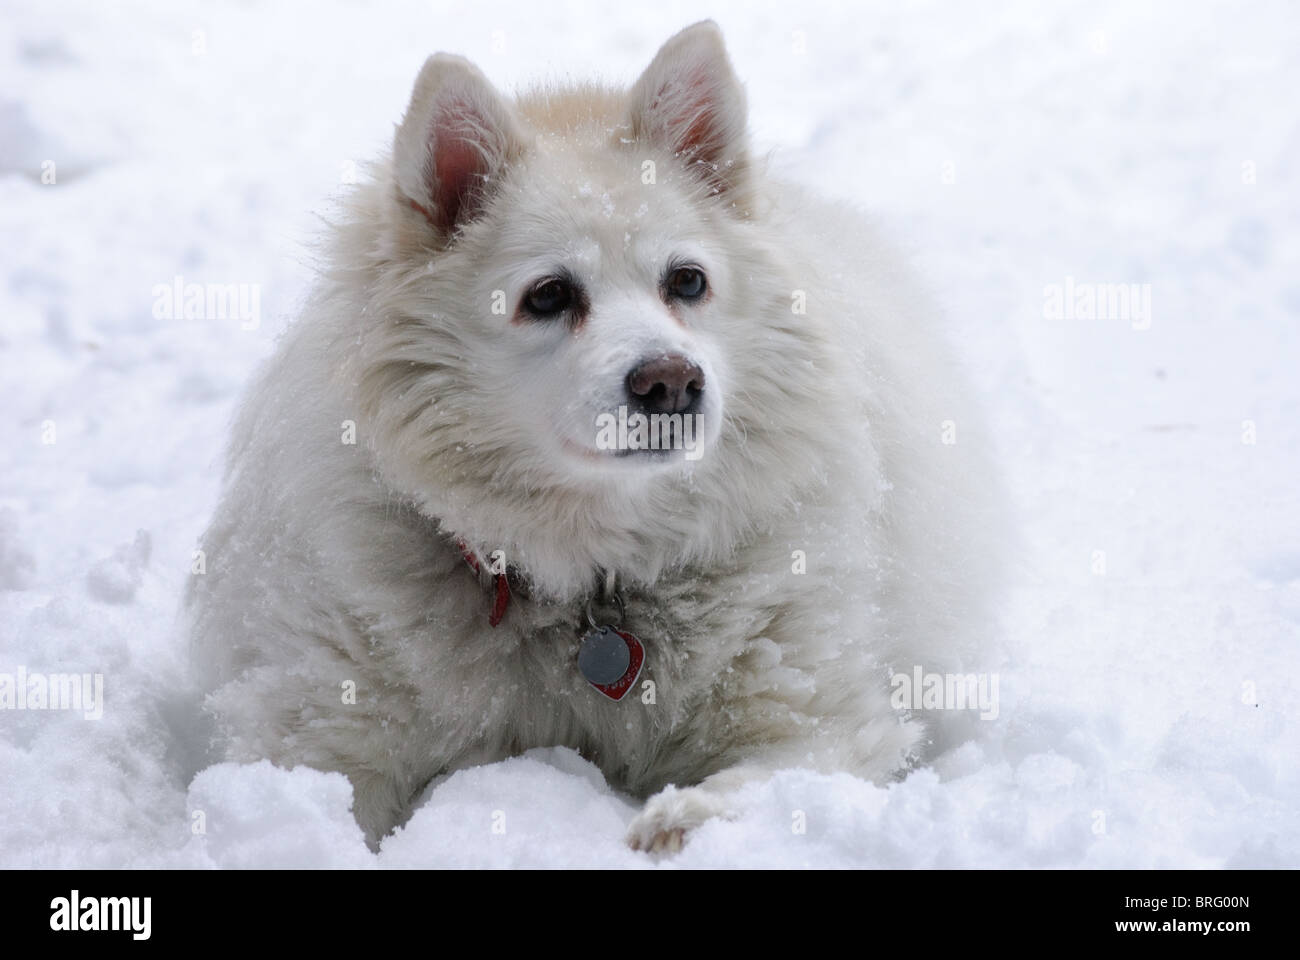 A white American Eskimo dog looks calm and peaceful in the snow Stock Photo